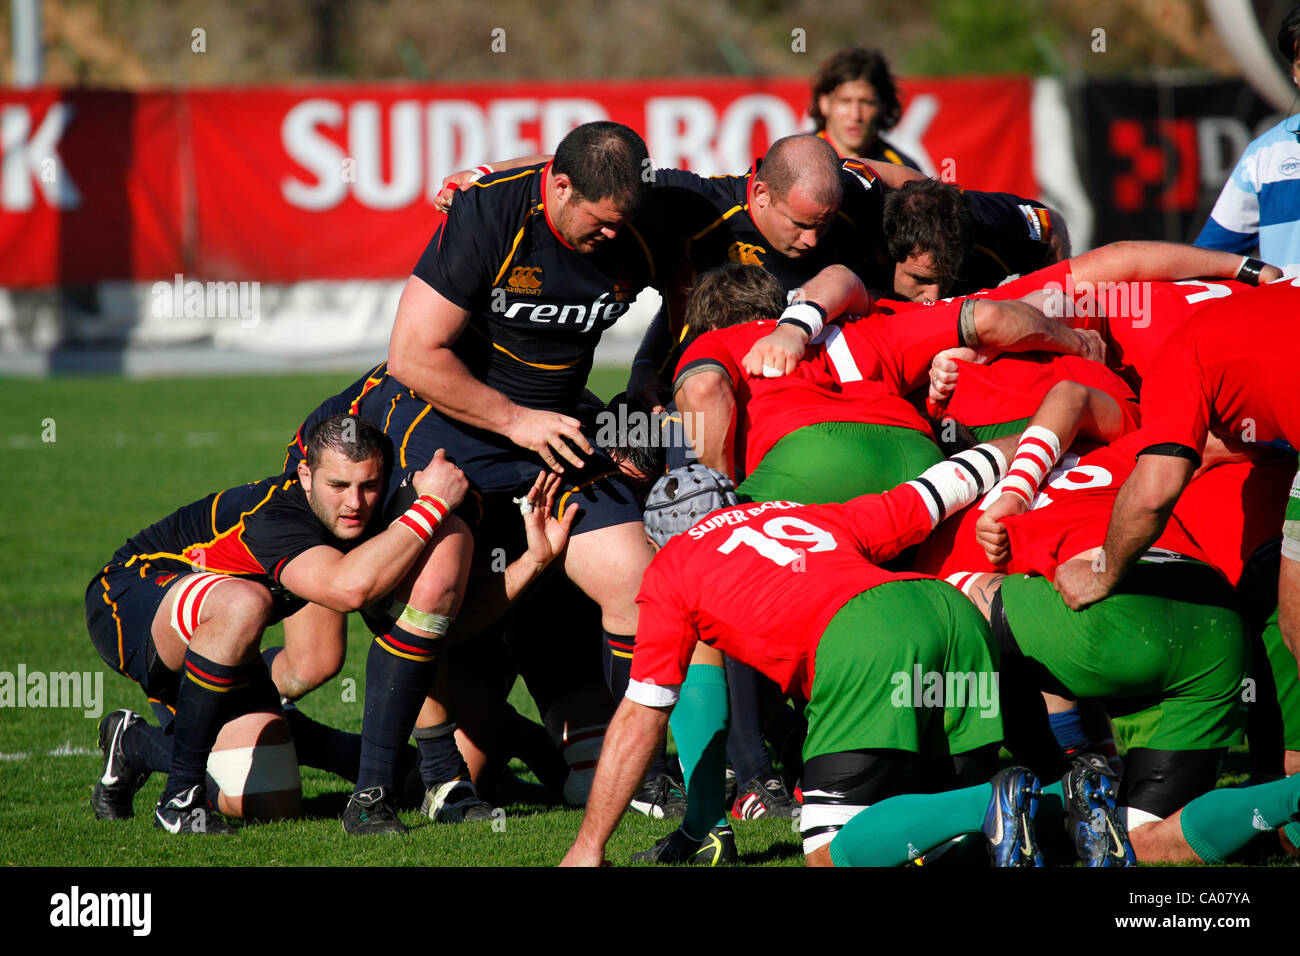 Portugal (in red) scrum down against Spain (in blue) in an international rugby match. Portugal beat Spain 23 - 17 - Stock Image